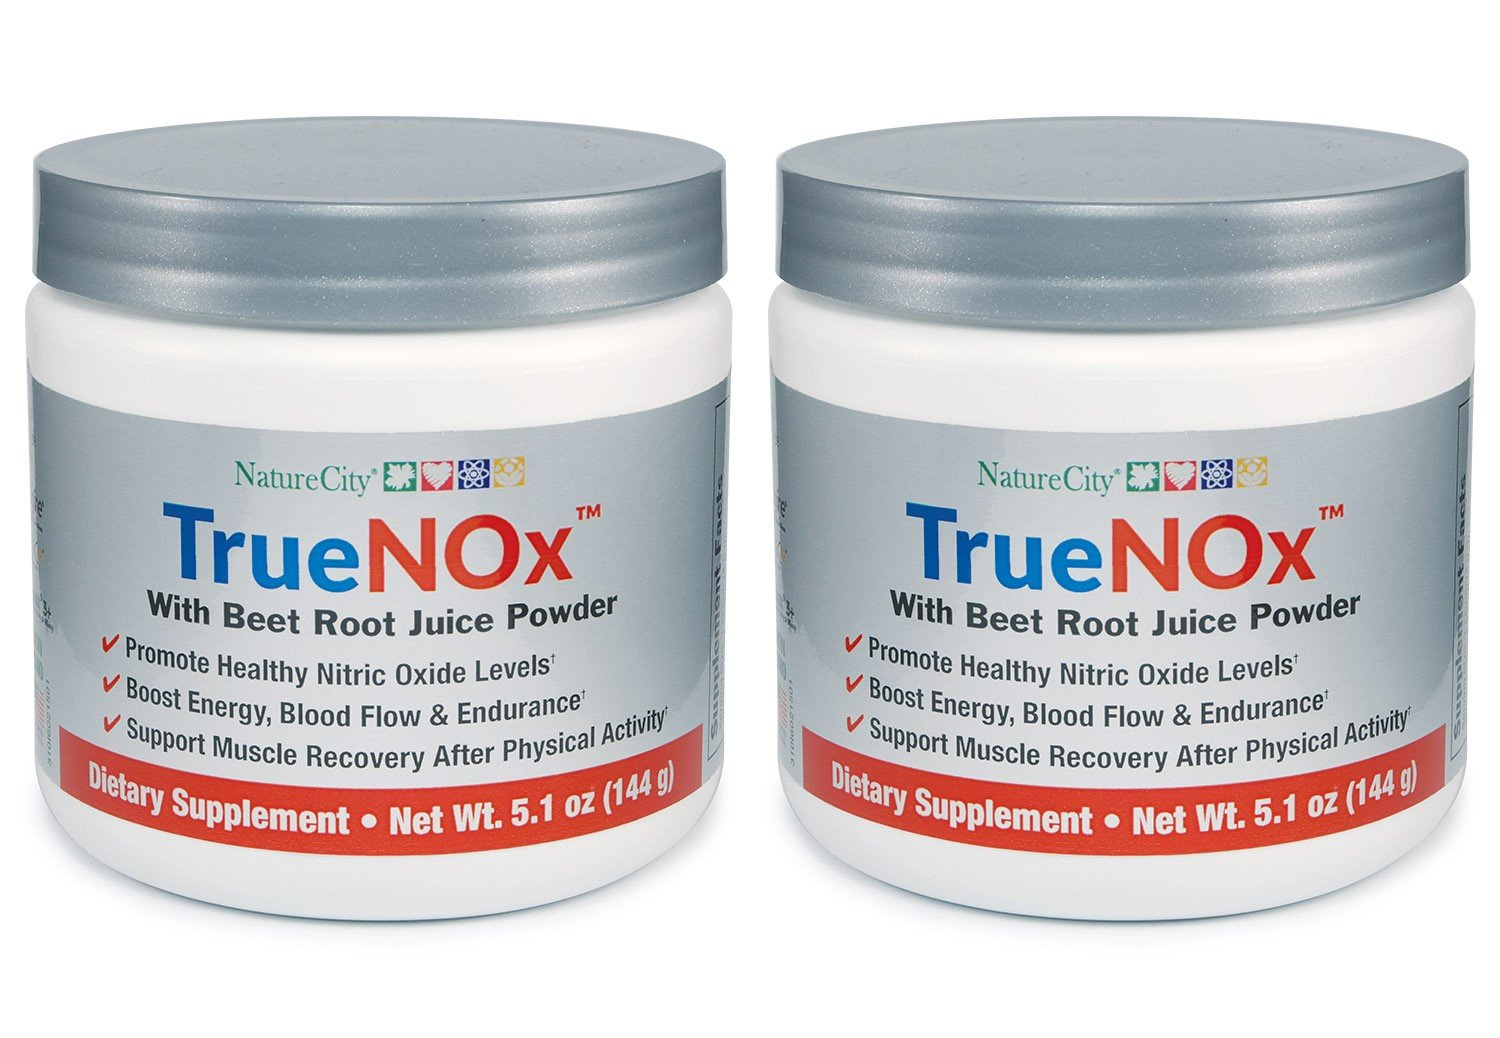 TrueNox With Beet Root Juice Powder - Premium Nitric Oxide and Athletic Endurance Booster - (2 Pack)